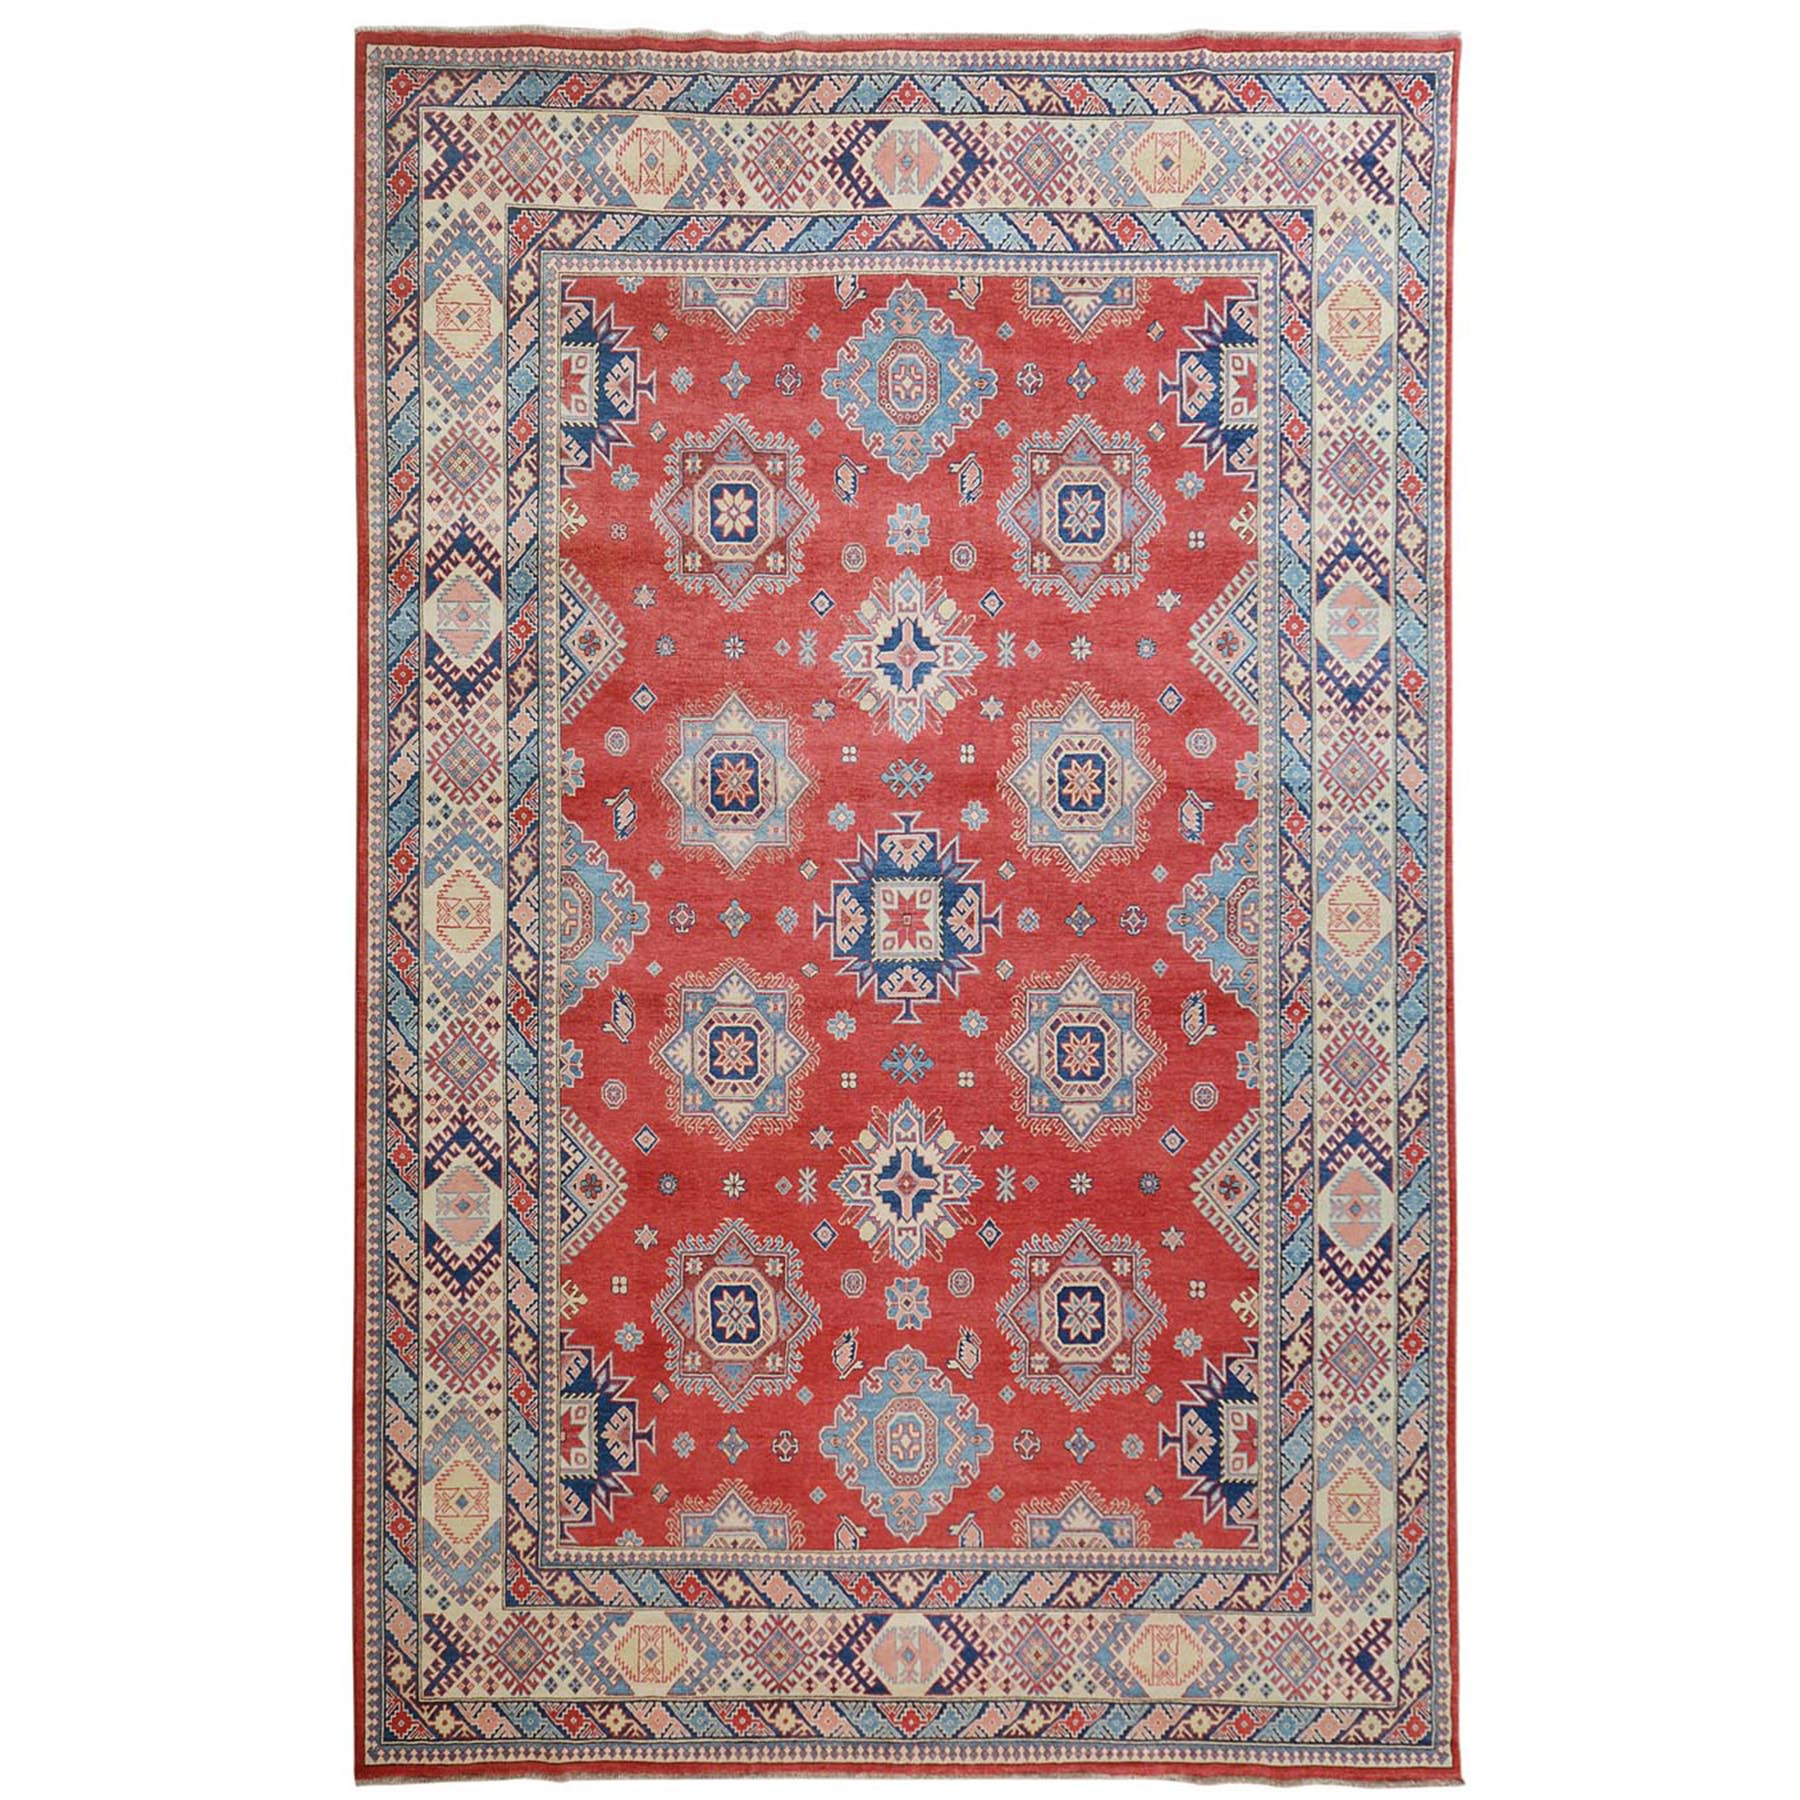 "10'x13'6"" Red Special Kazak Geometric Design Pure Wool Hand Woven Oriental Rug"